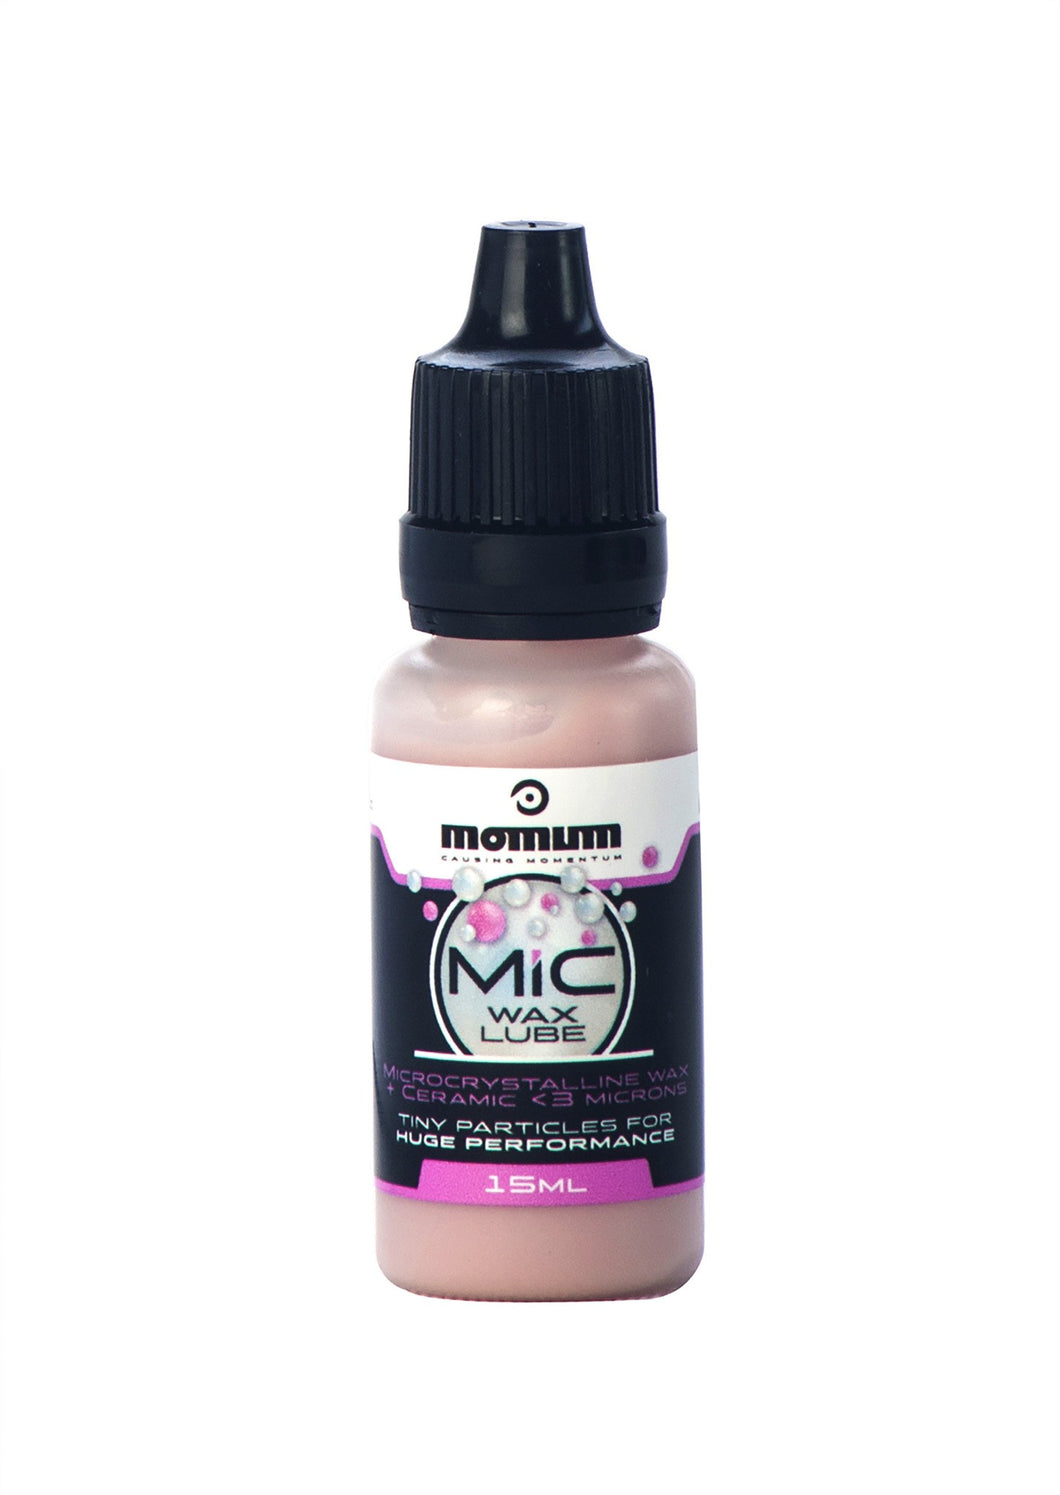 MOMUM MIC Wax Lube